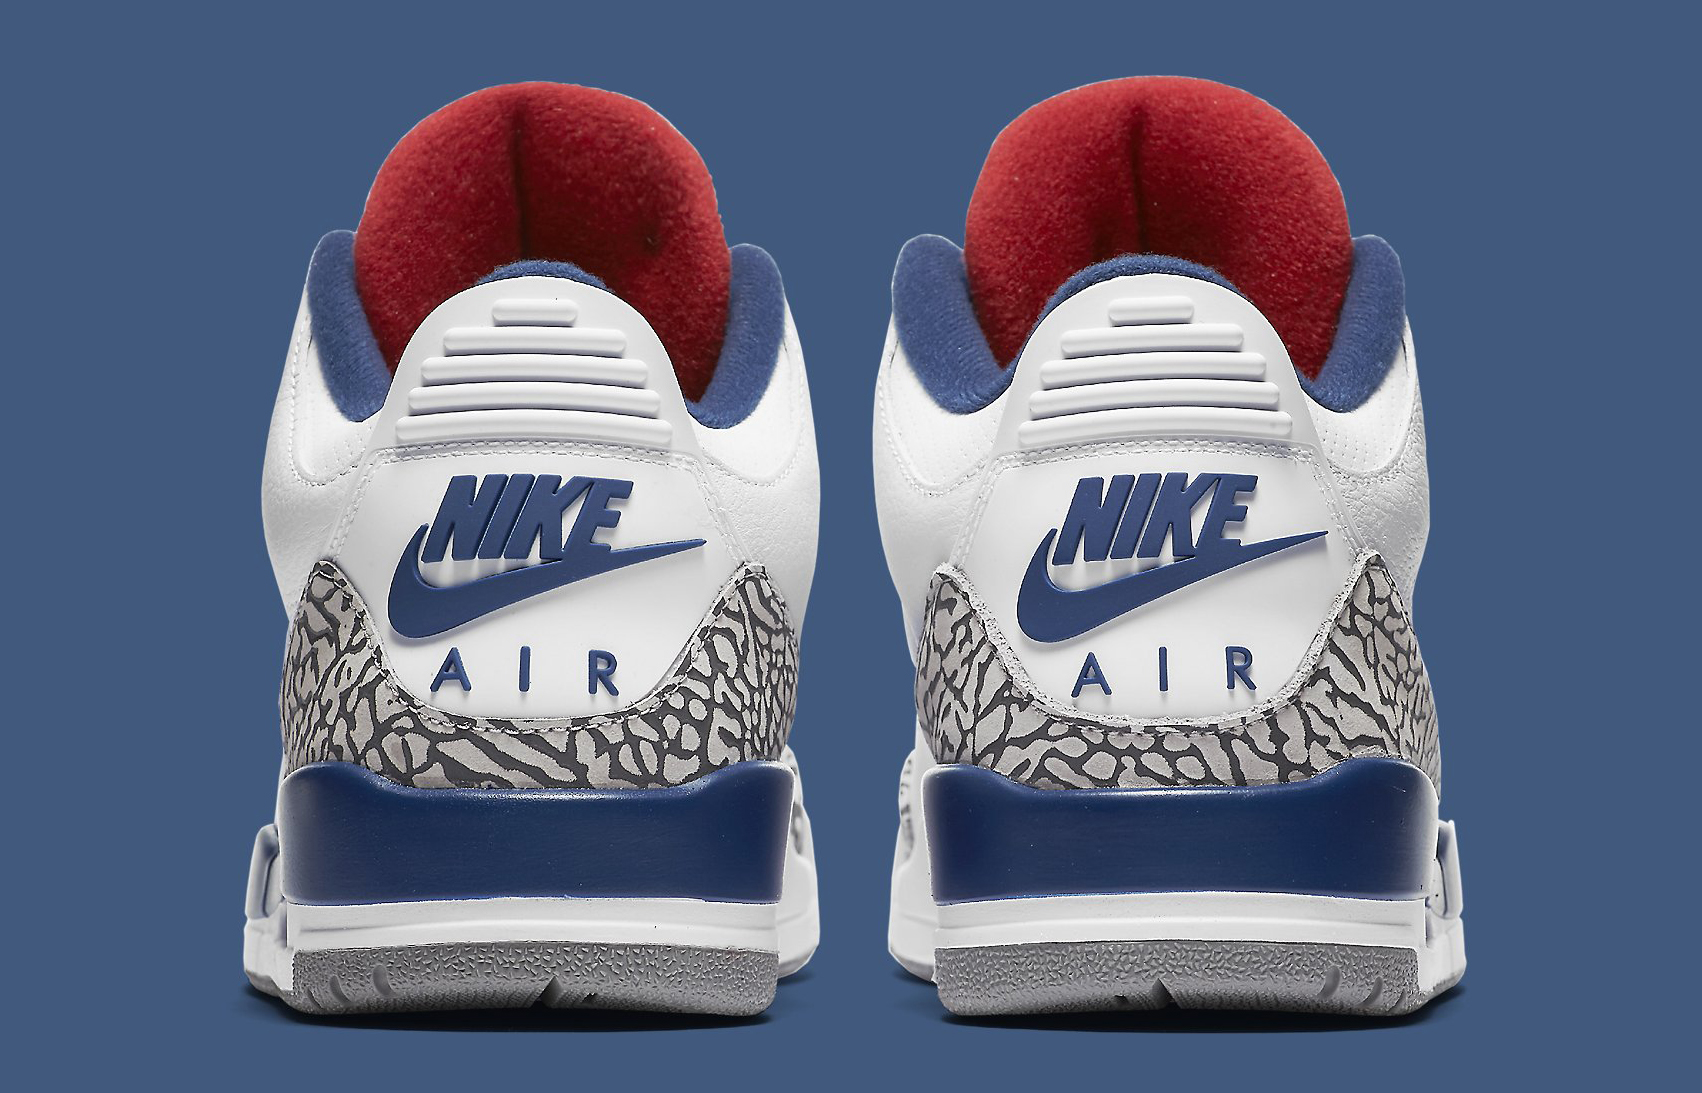 05cbae347f5746 Image via Nike True Blue Air Jordan 3 854262-106 Heel